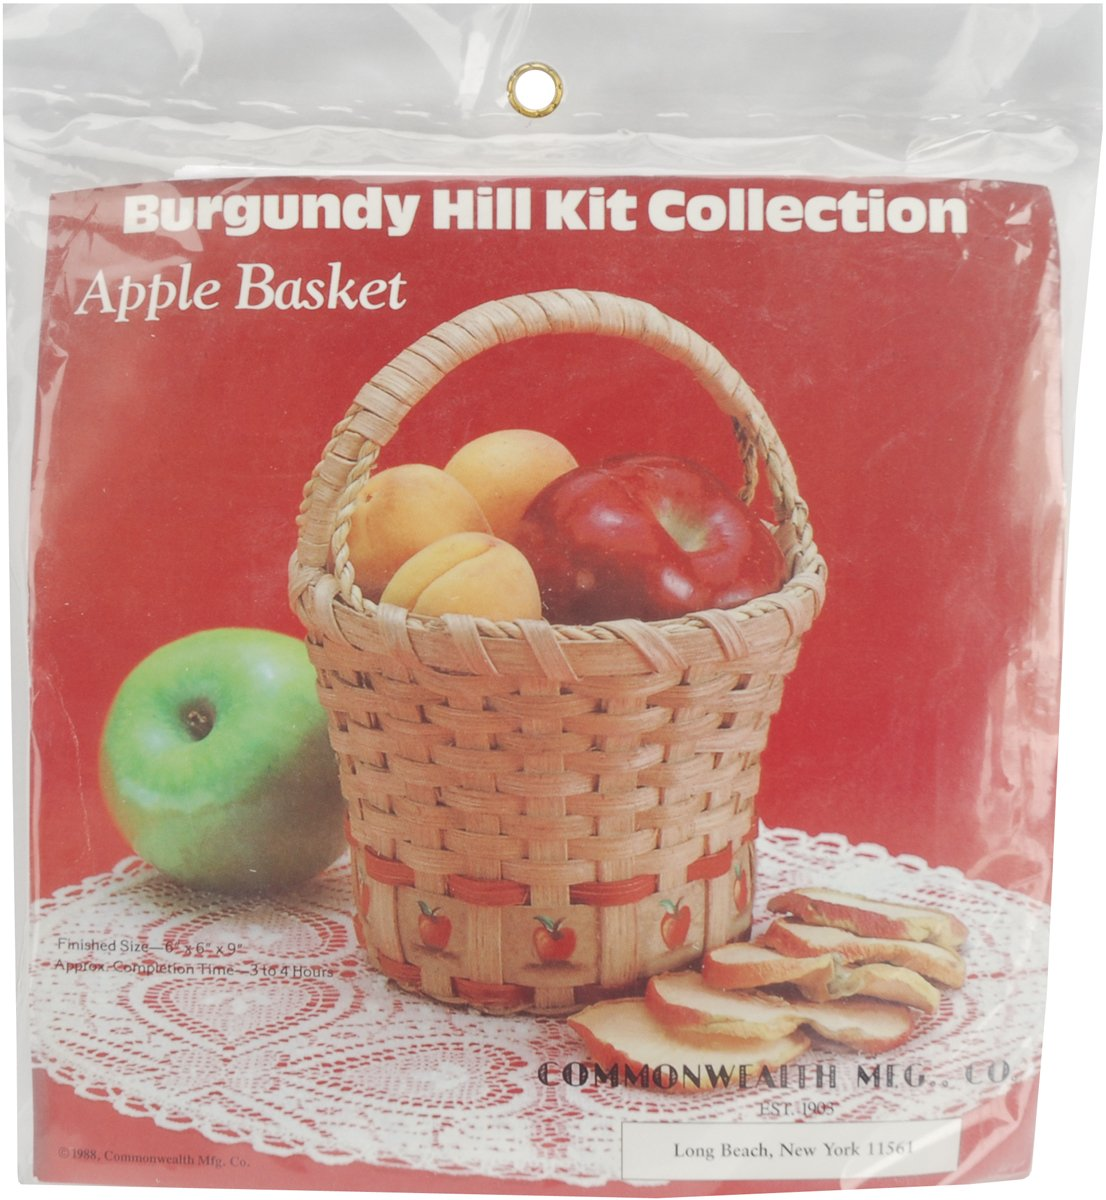 Commonwealth Basket Burgundy Hill Basket Kits, Apple Basket 6-Inch by 6-Inch by, 9-Inch 12800-12842